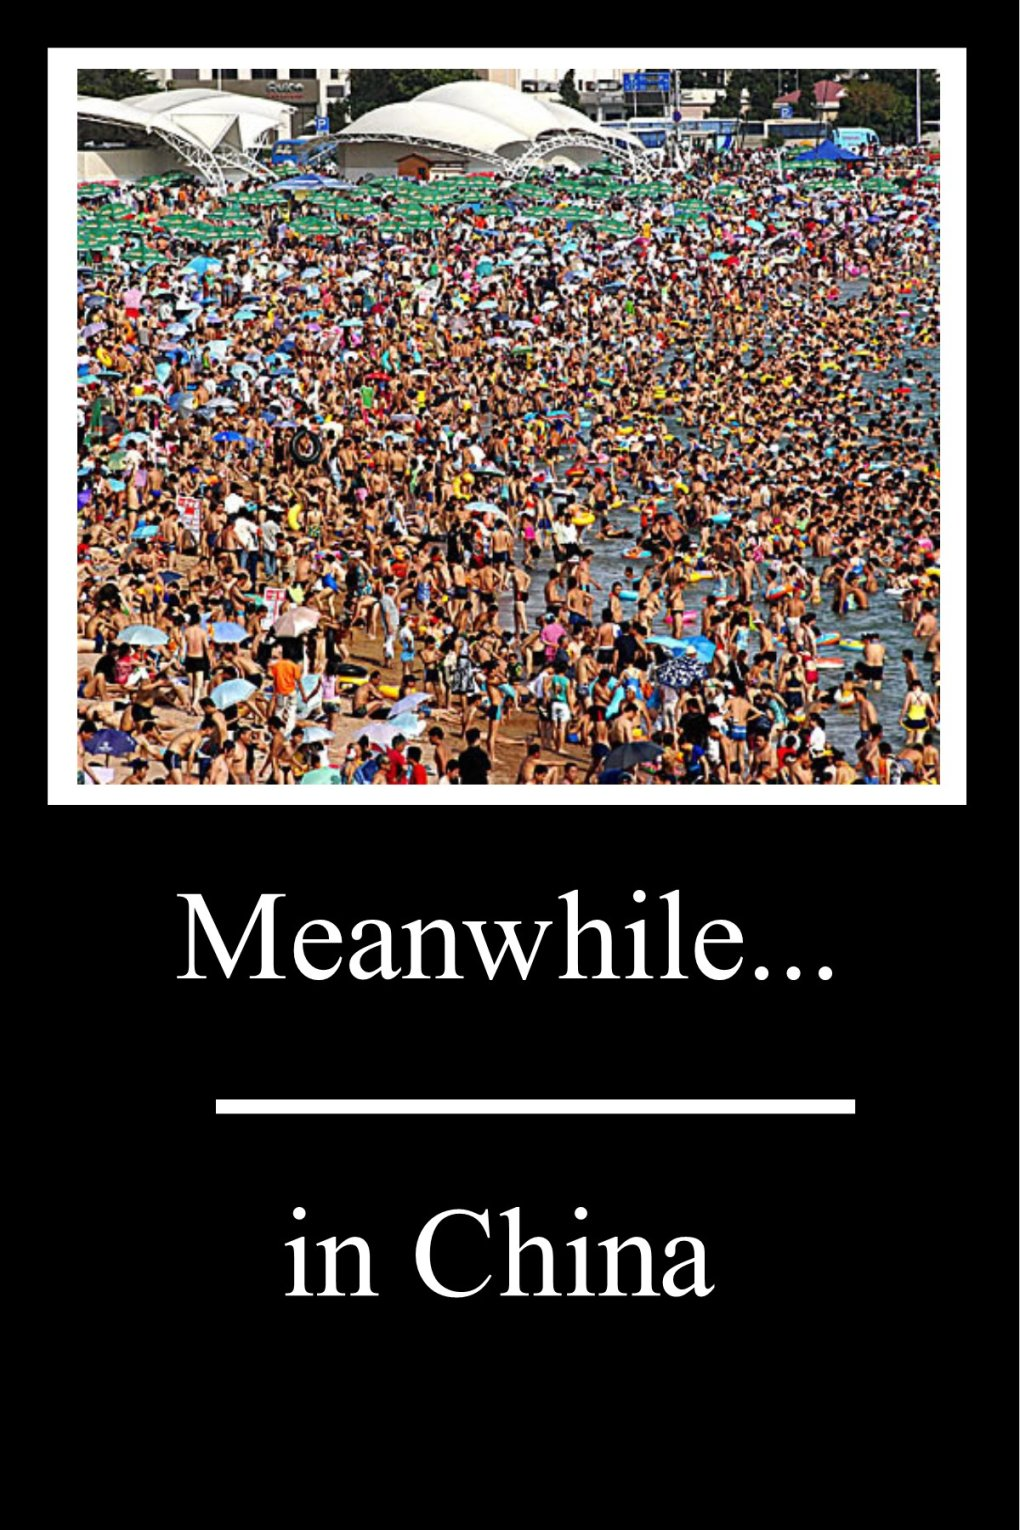 chian - meanwhile in ...